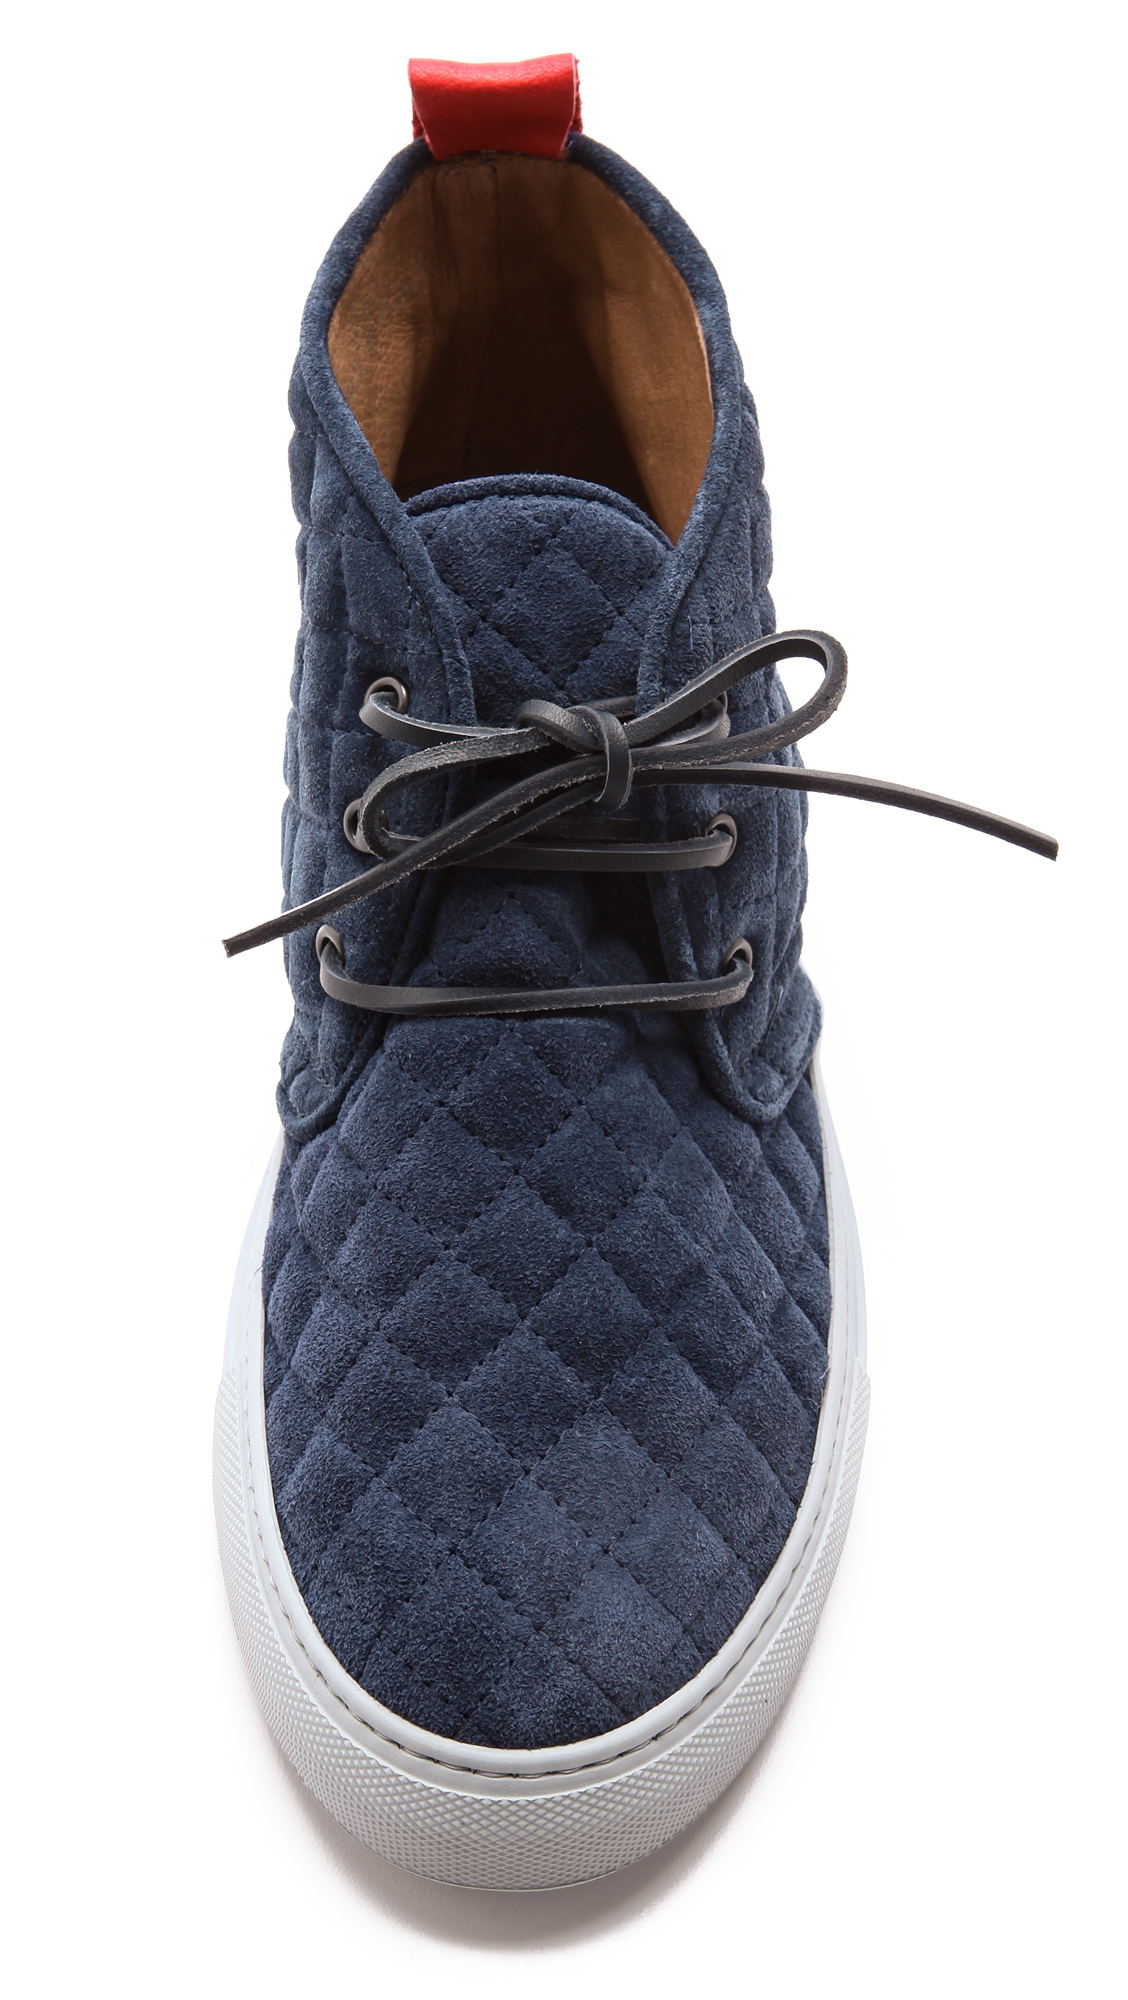 Del Toro Quilted Suede Alto Chukka Boots   EAST DANE Use Code ... : del toro quilted chukka - Adamdwight.com